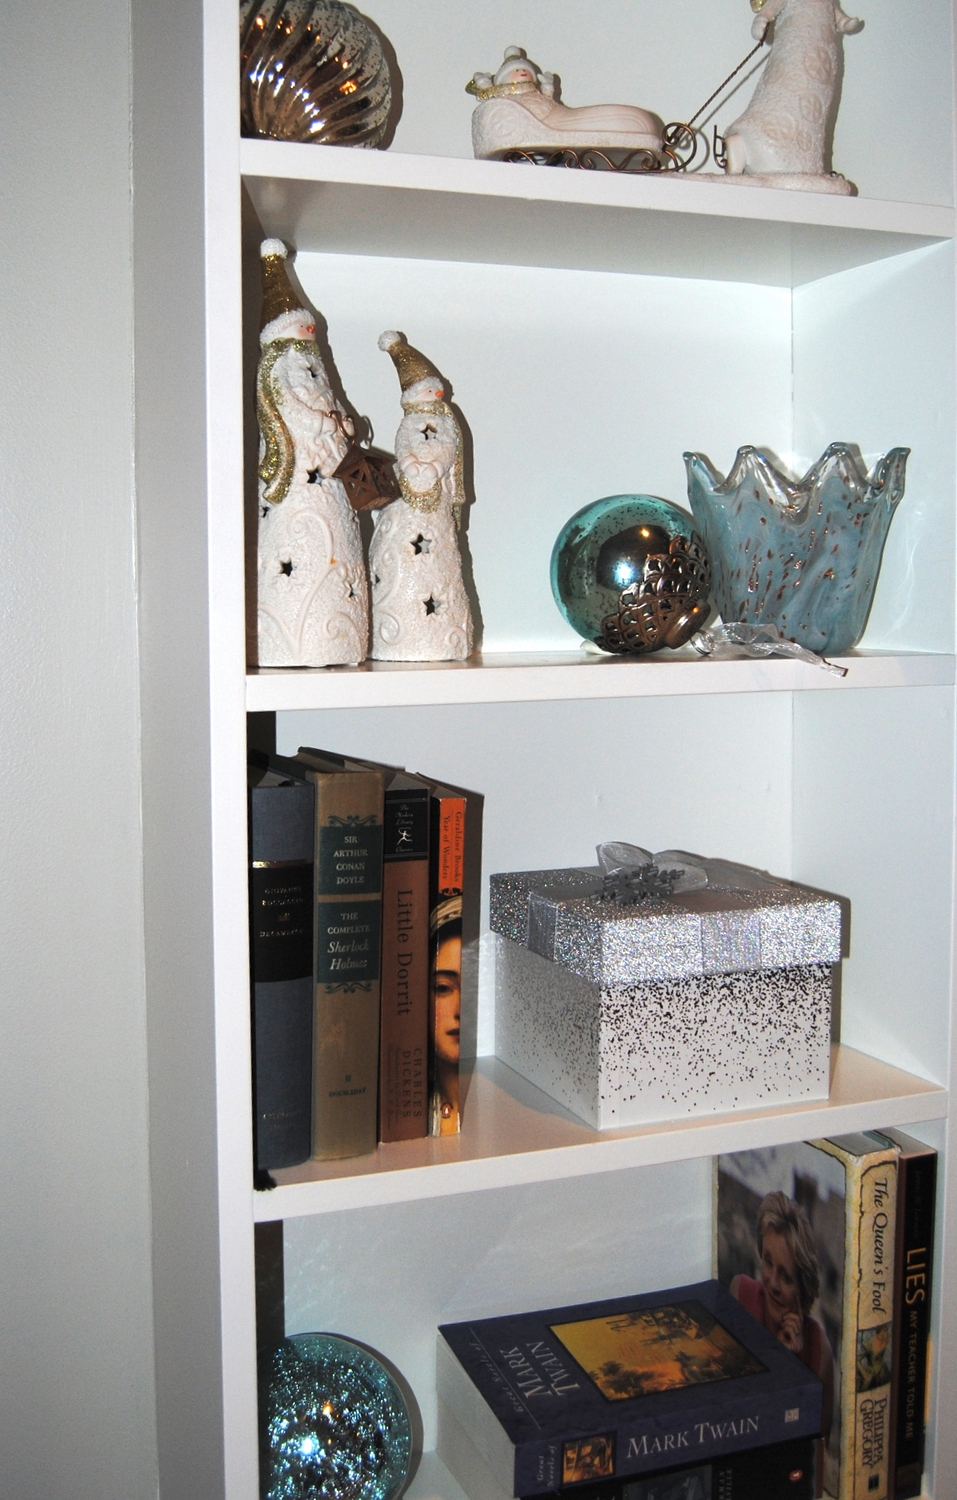 The fixed shelves around the fireplace were styled with the innkeepers books, accessories, and ornaments